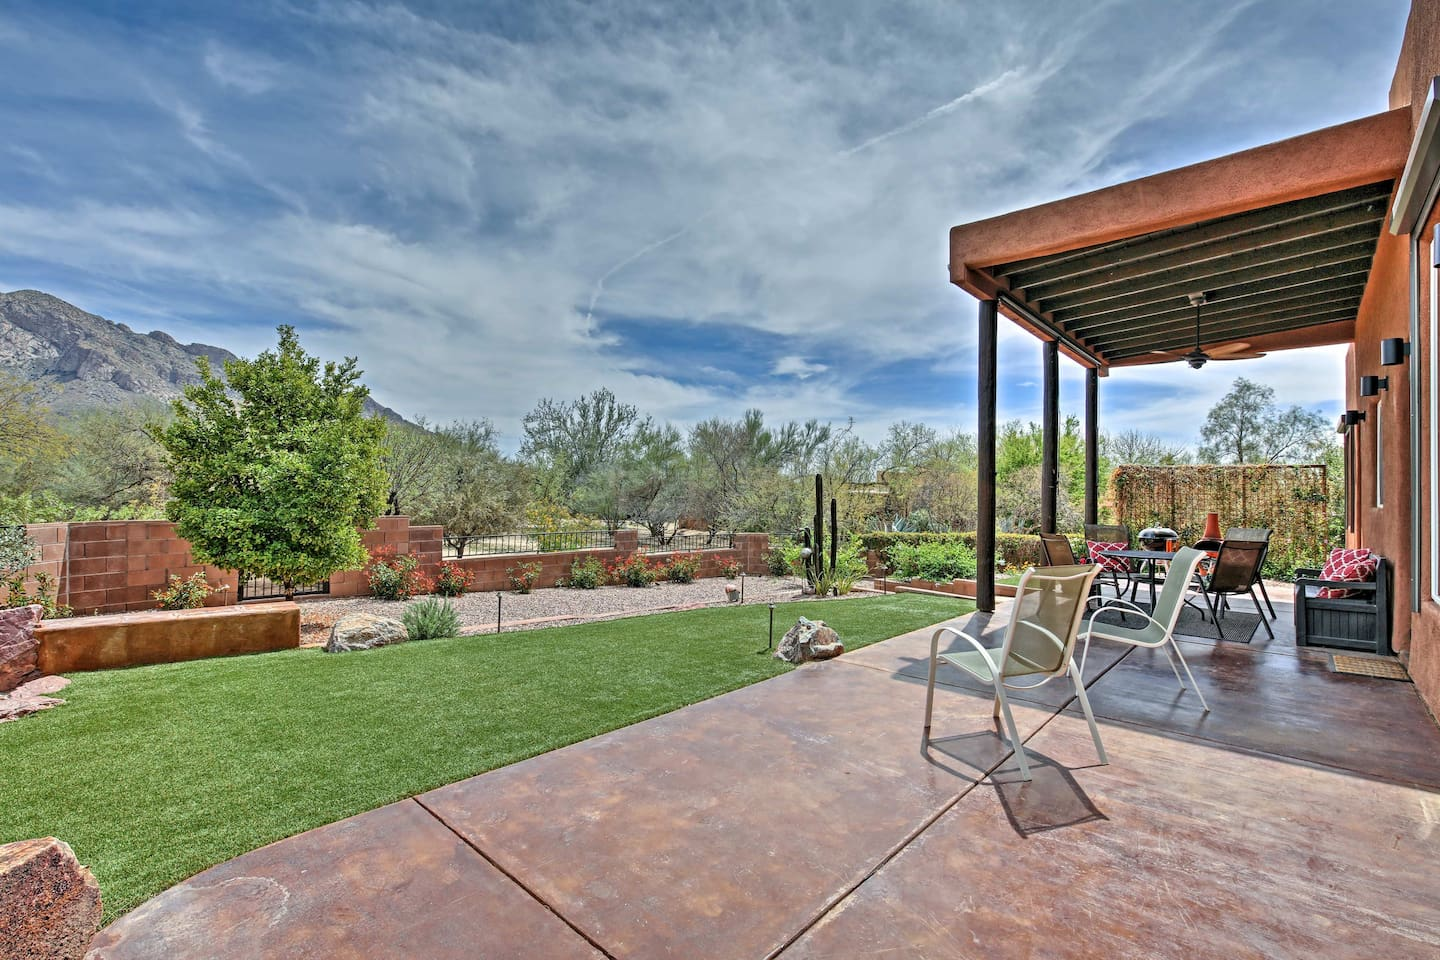 A desert oasis awaits at this 3-bed, 2-bath vacation rental home in Tucson!